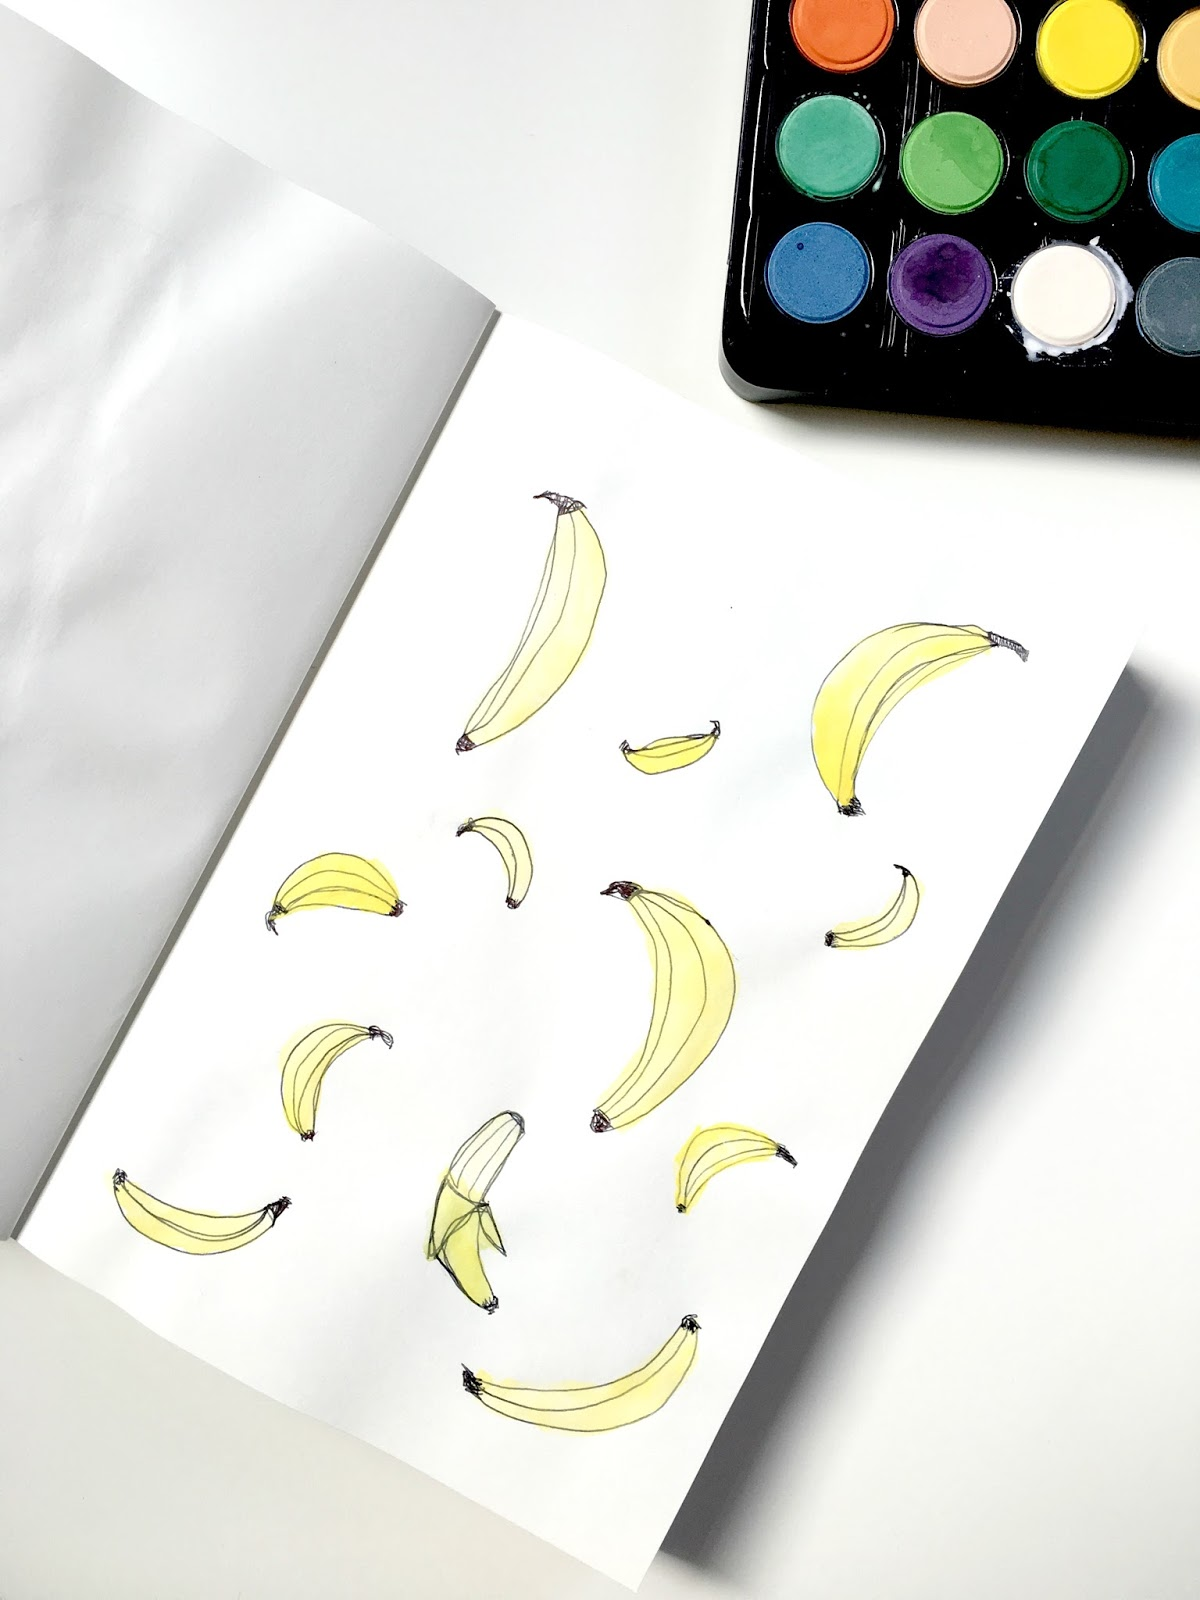 Sweet Allure I Decided To Start An Art Journal creative sketchs drawing watercolours painting doodles bananas fun hobby